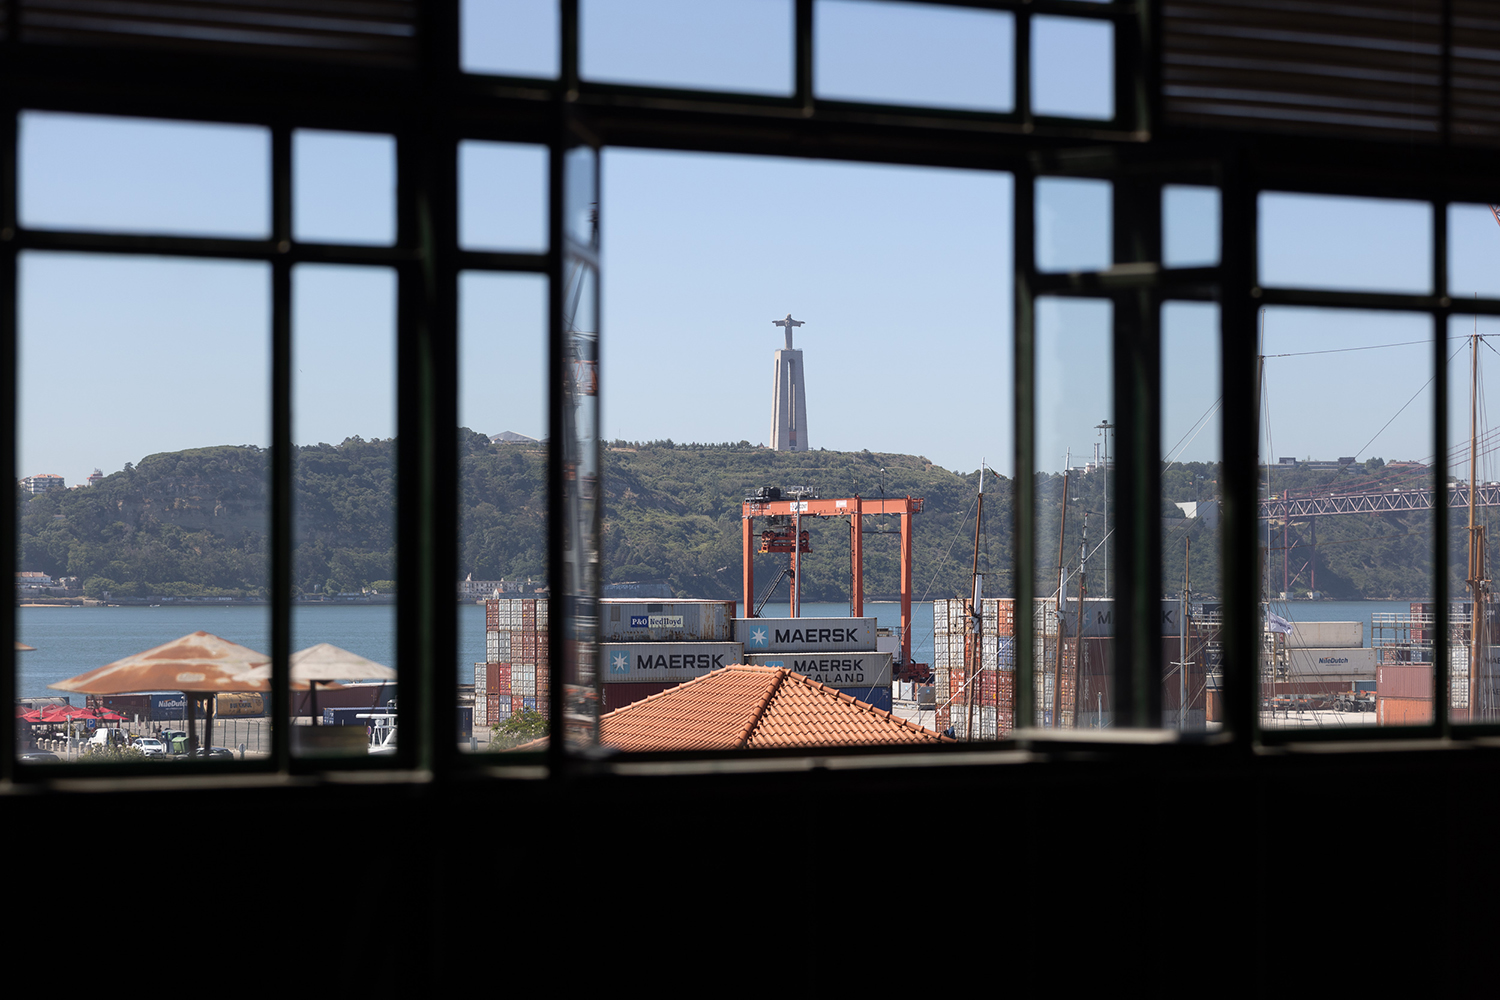 Patinated steel beams cross the space, supported by exposed brickwork while iron-framed windows overlook the Tejo estuary, shipyards beyond, and the city's iconic Santuário de Cristo Rei in Almada.